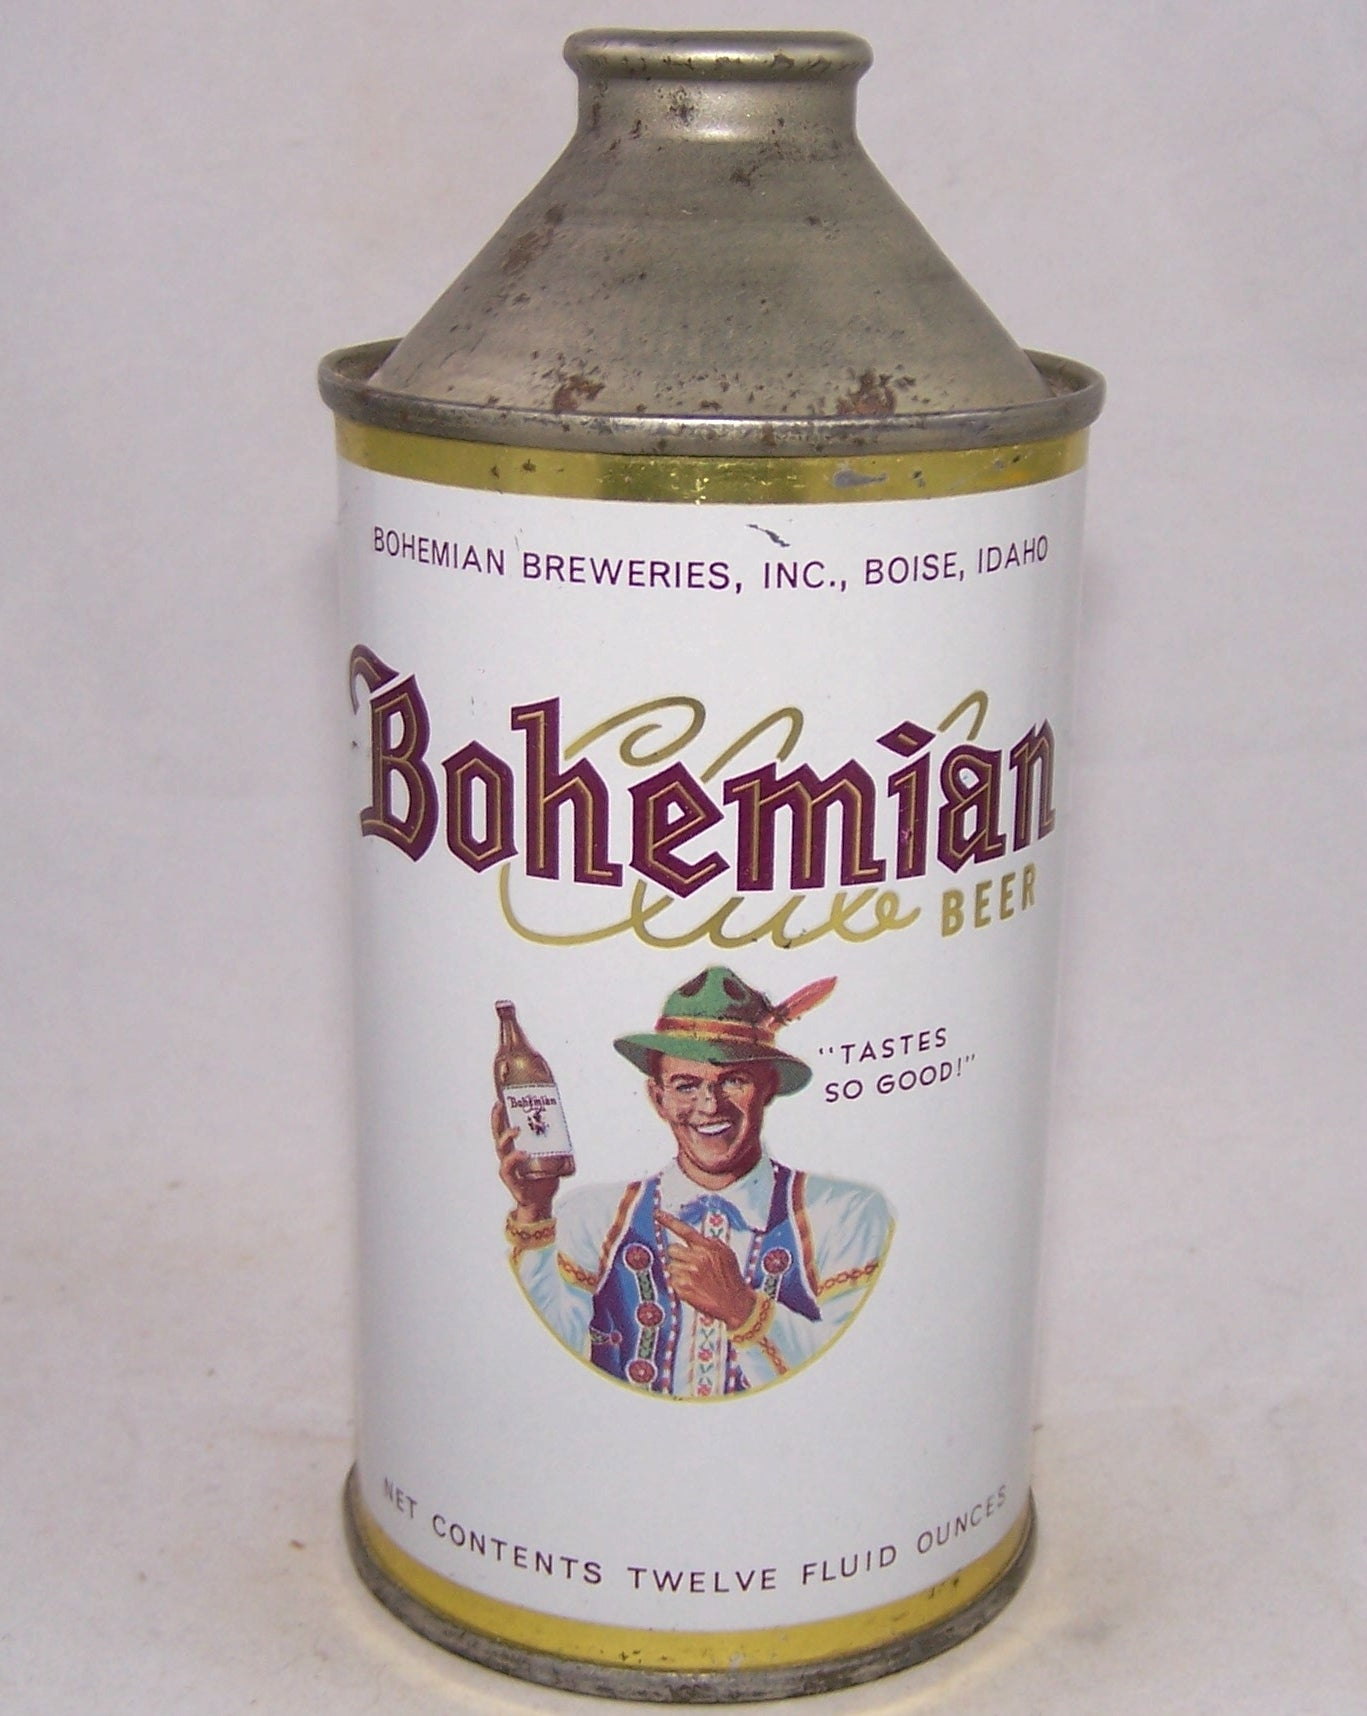 Bohemian Club Beer, USBC 154-03, Grade 1/1+ Sold on 04/05/18